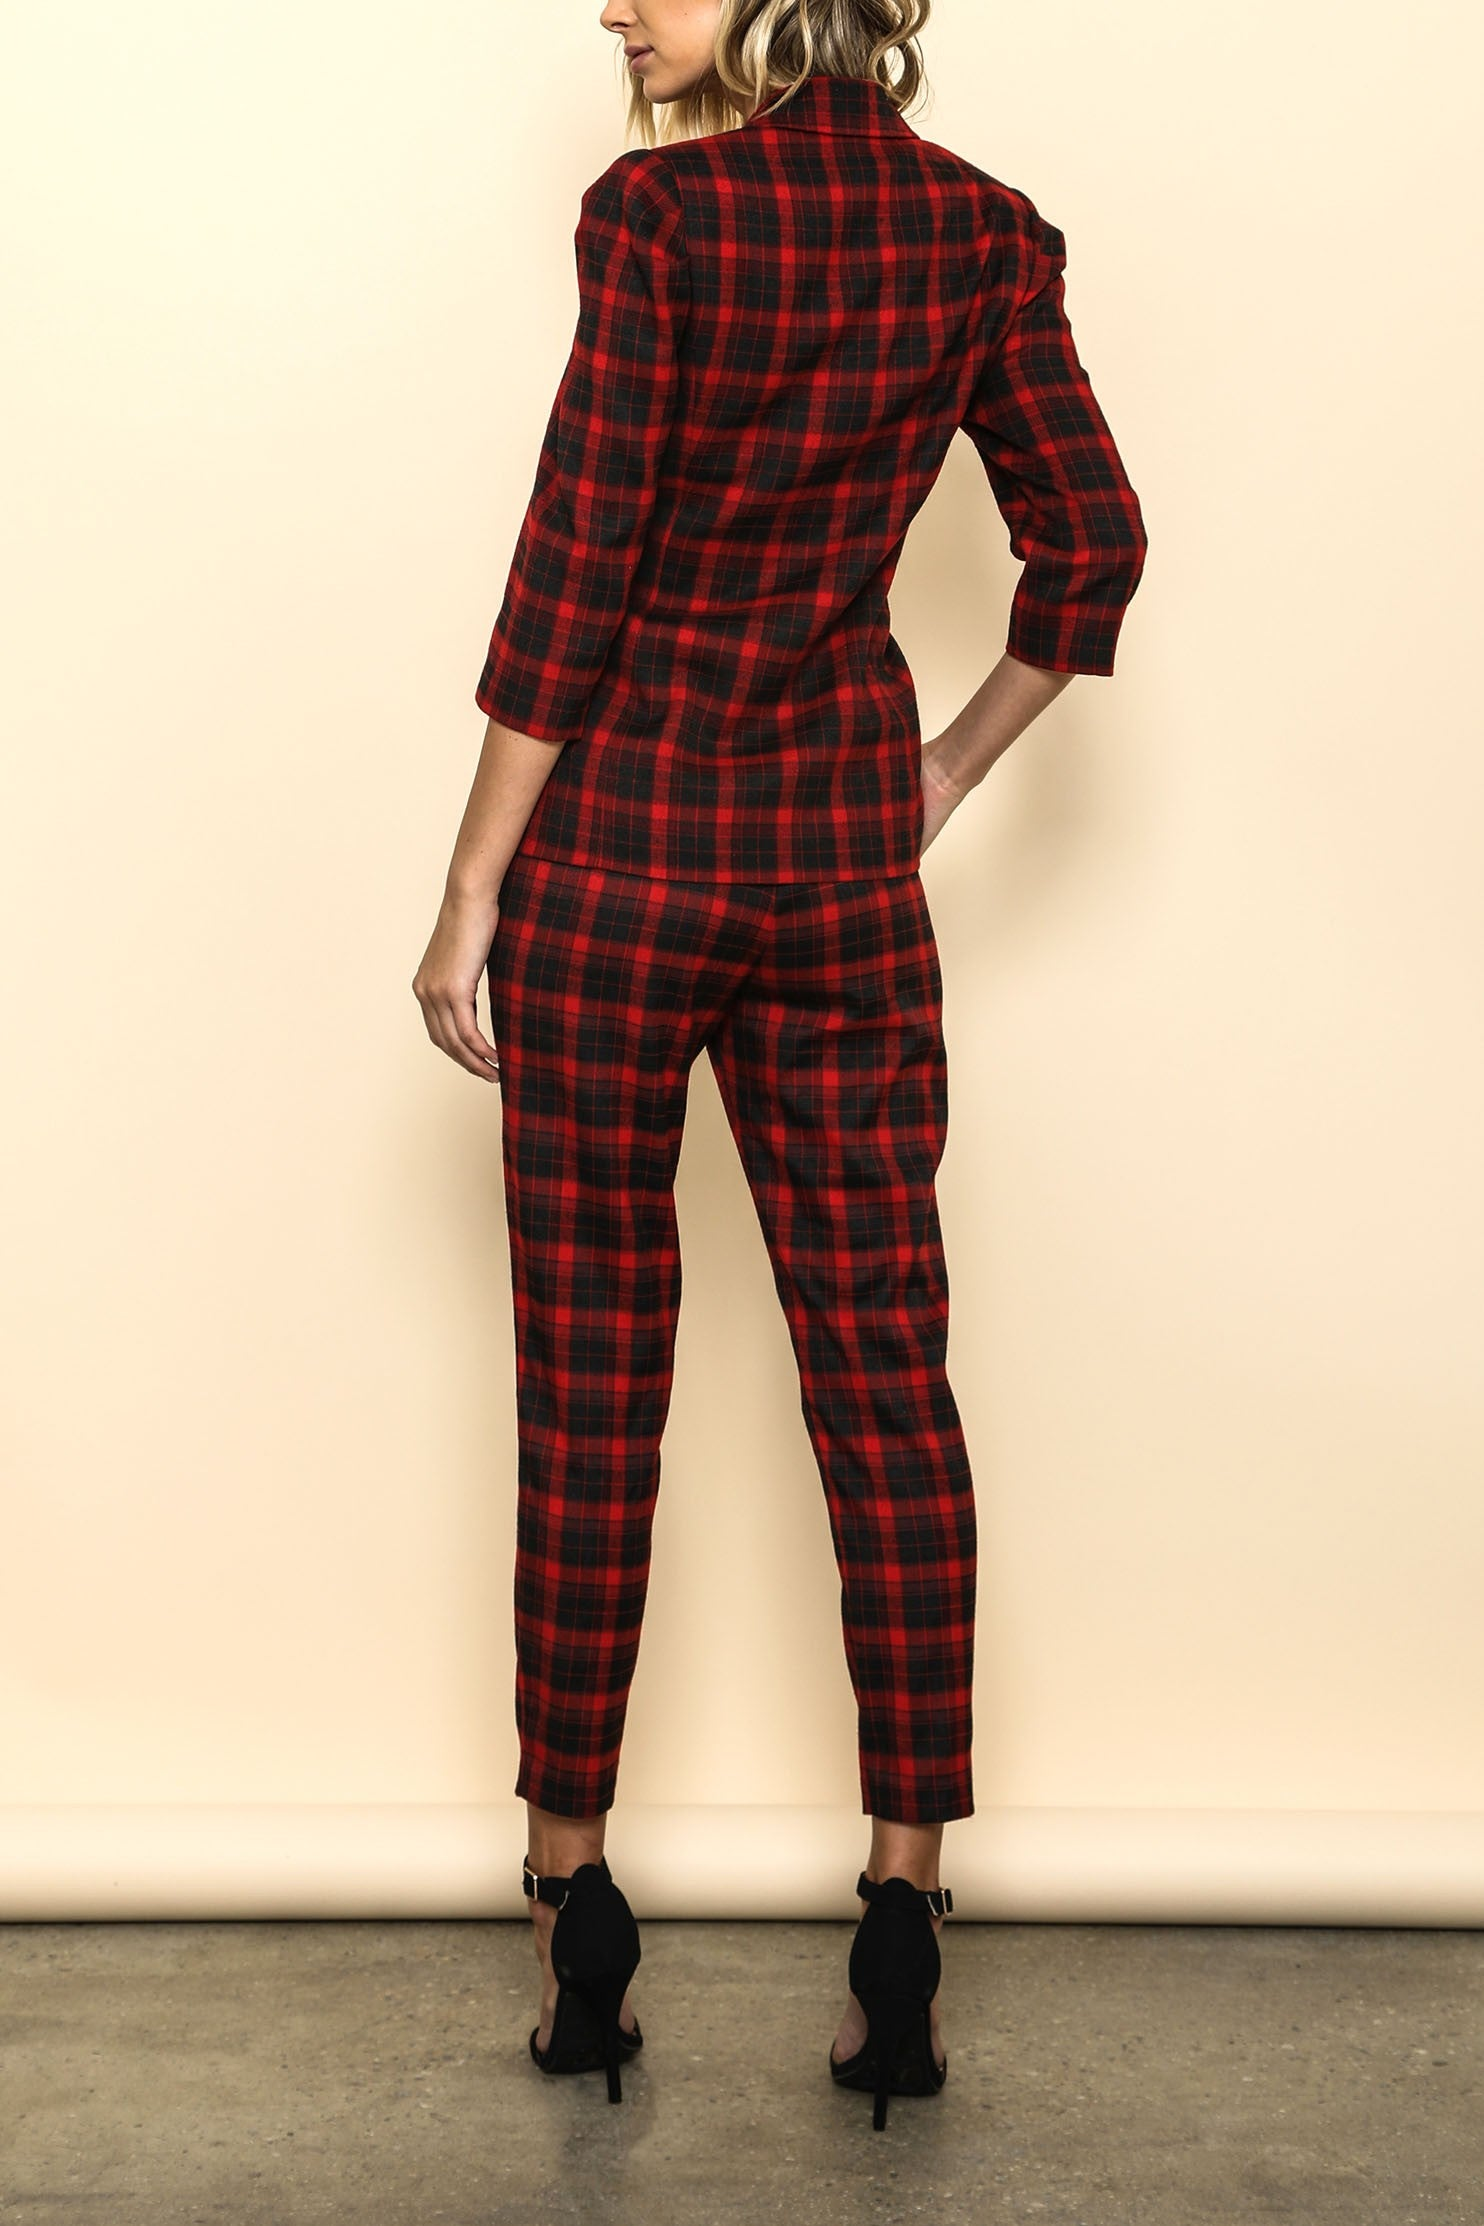 Checkmate Plaid 2-Piece Set - Haute Mood